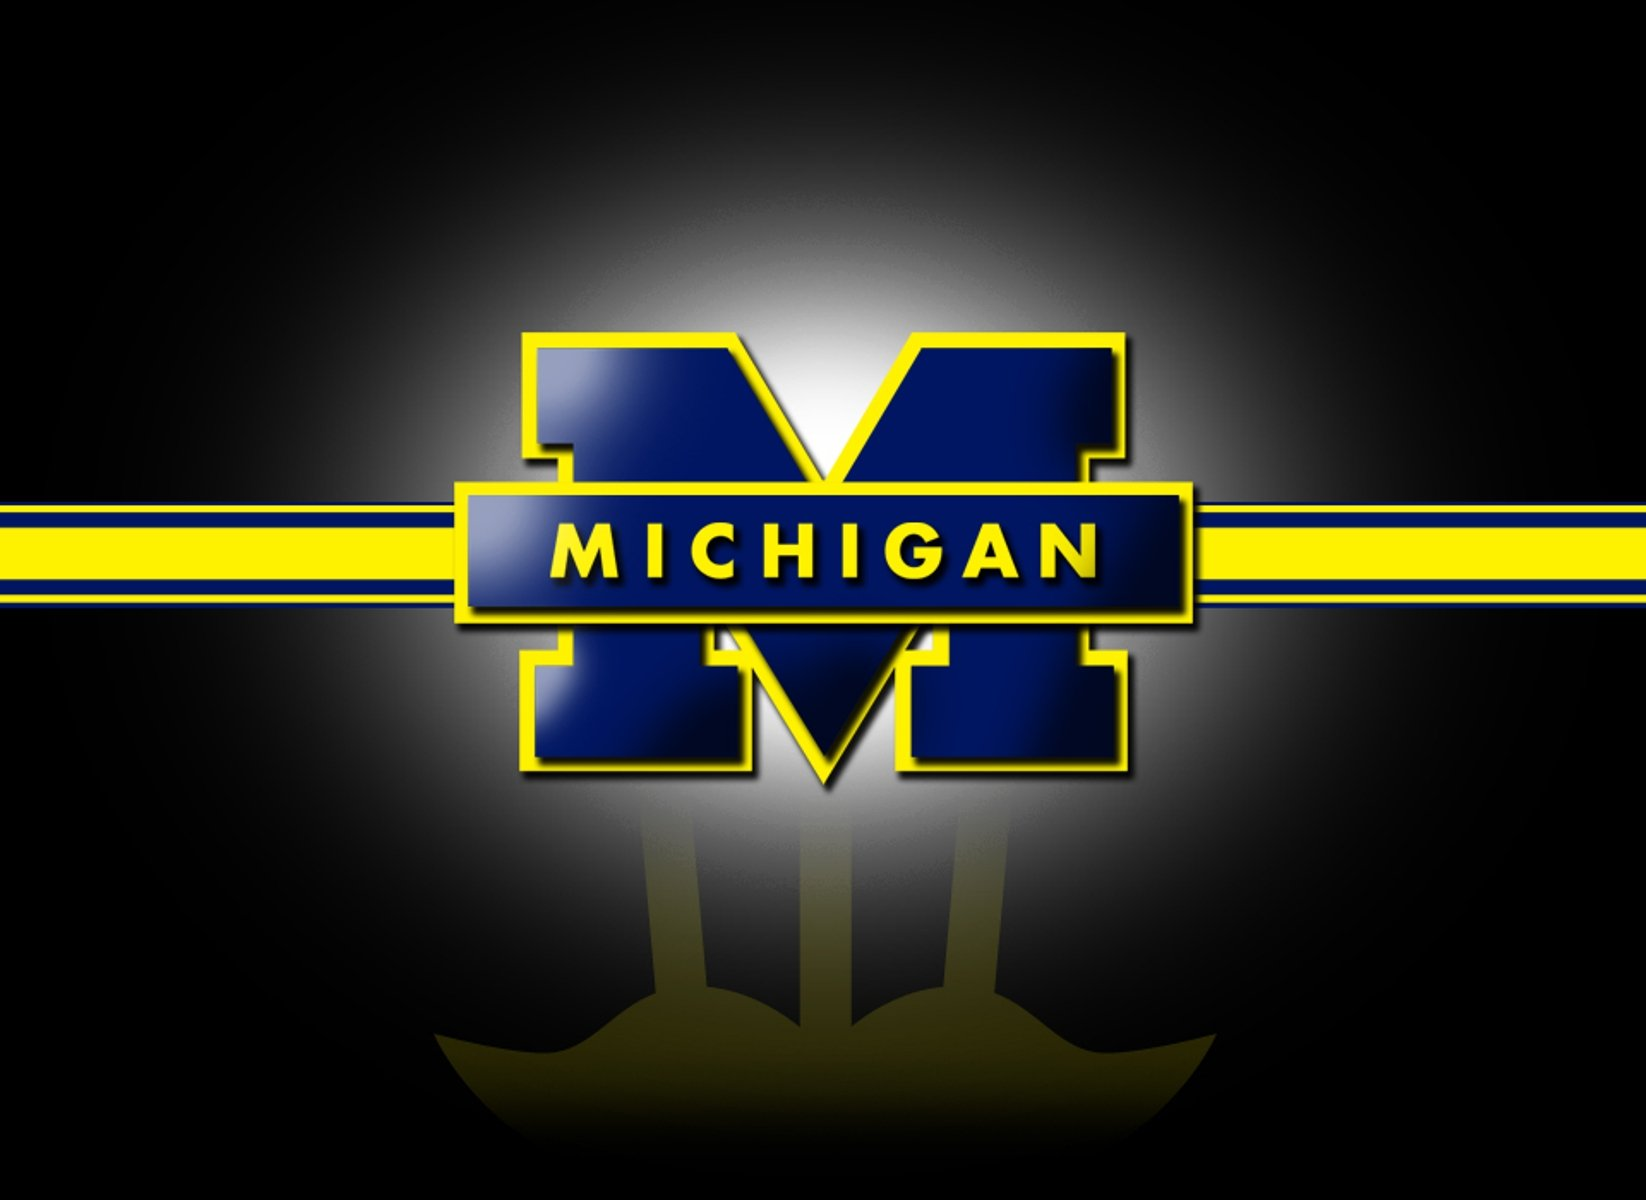 MICHIGAN WOLVERINES college football wallpaper 1646x1200 593777 1646x1200